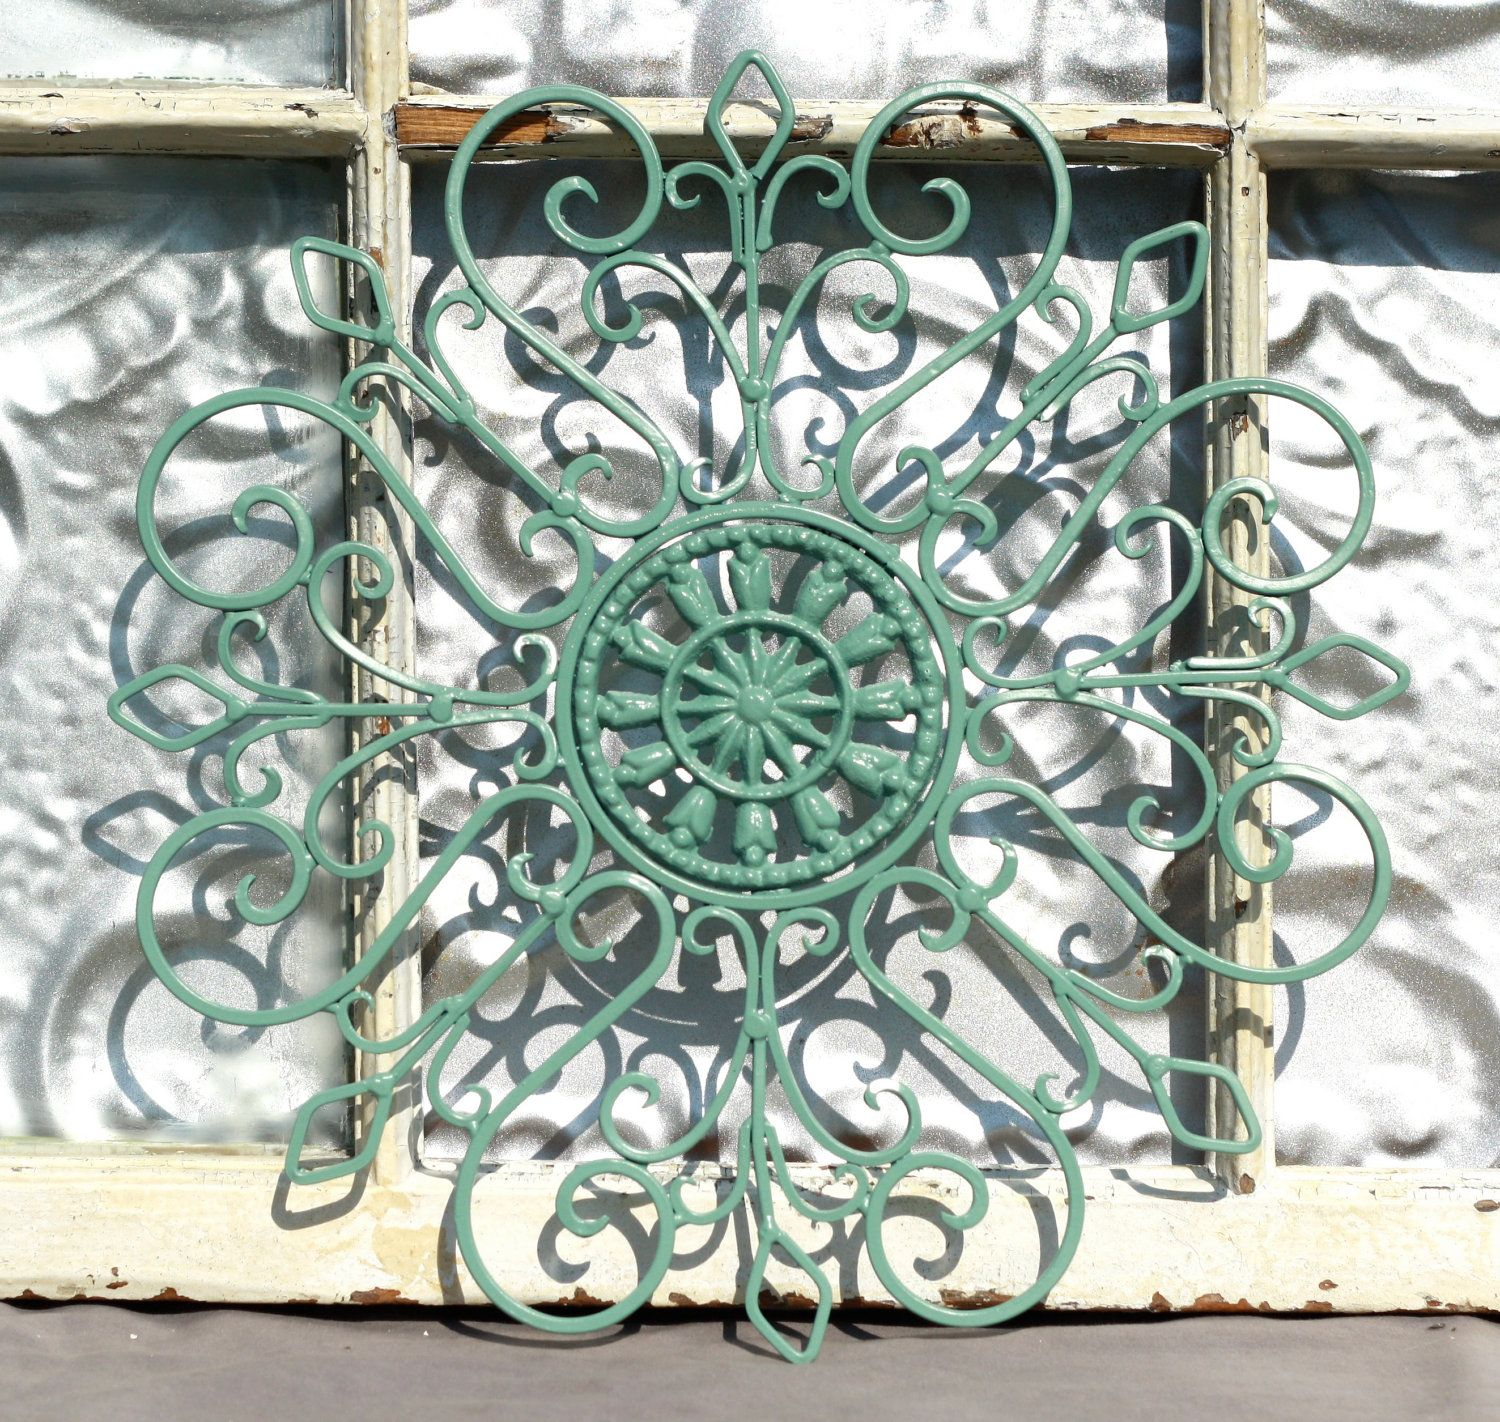 Wrought iron outdoor decor - Wrought Iron Wall Decor Metal Wall Hanging Indoor Outdoor Metal Wall Art